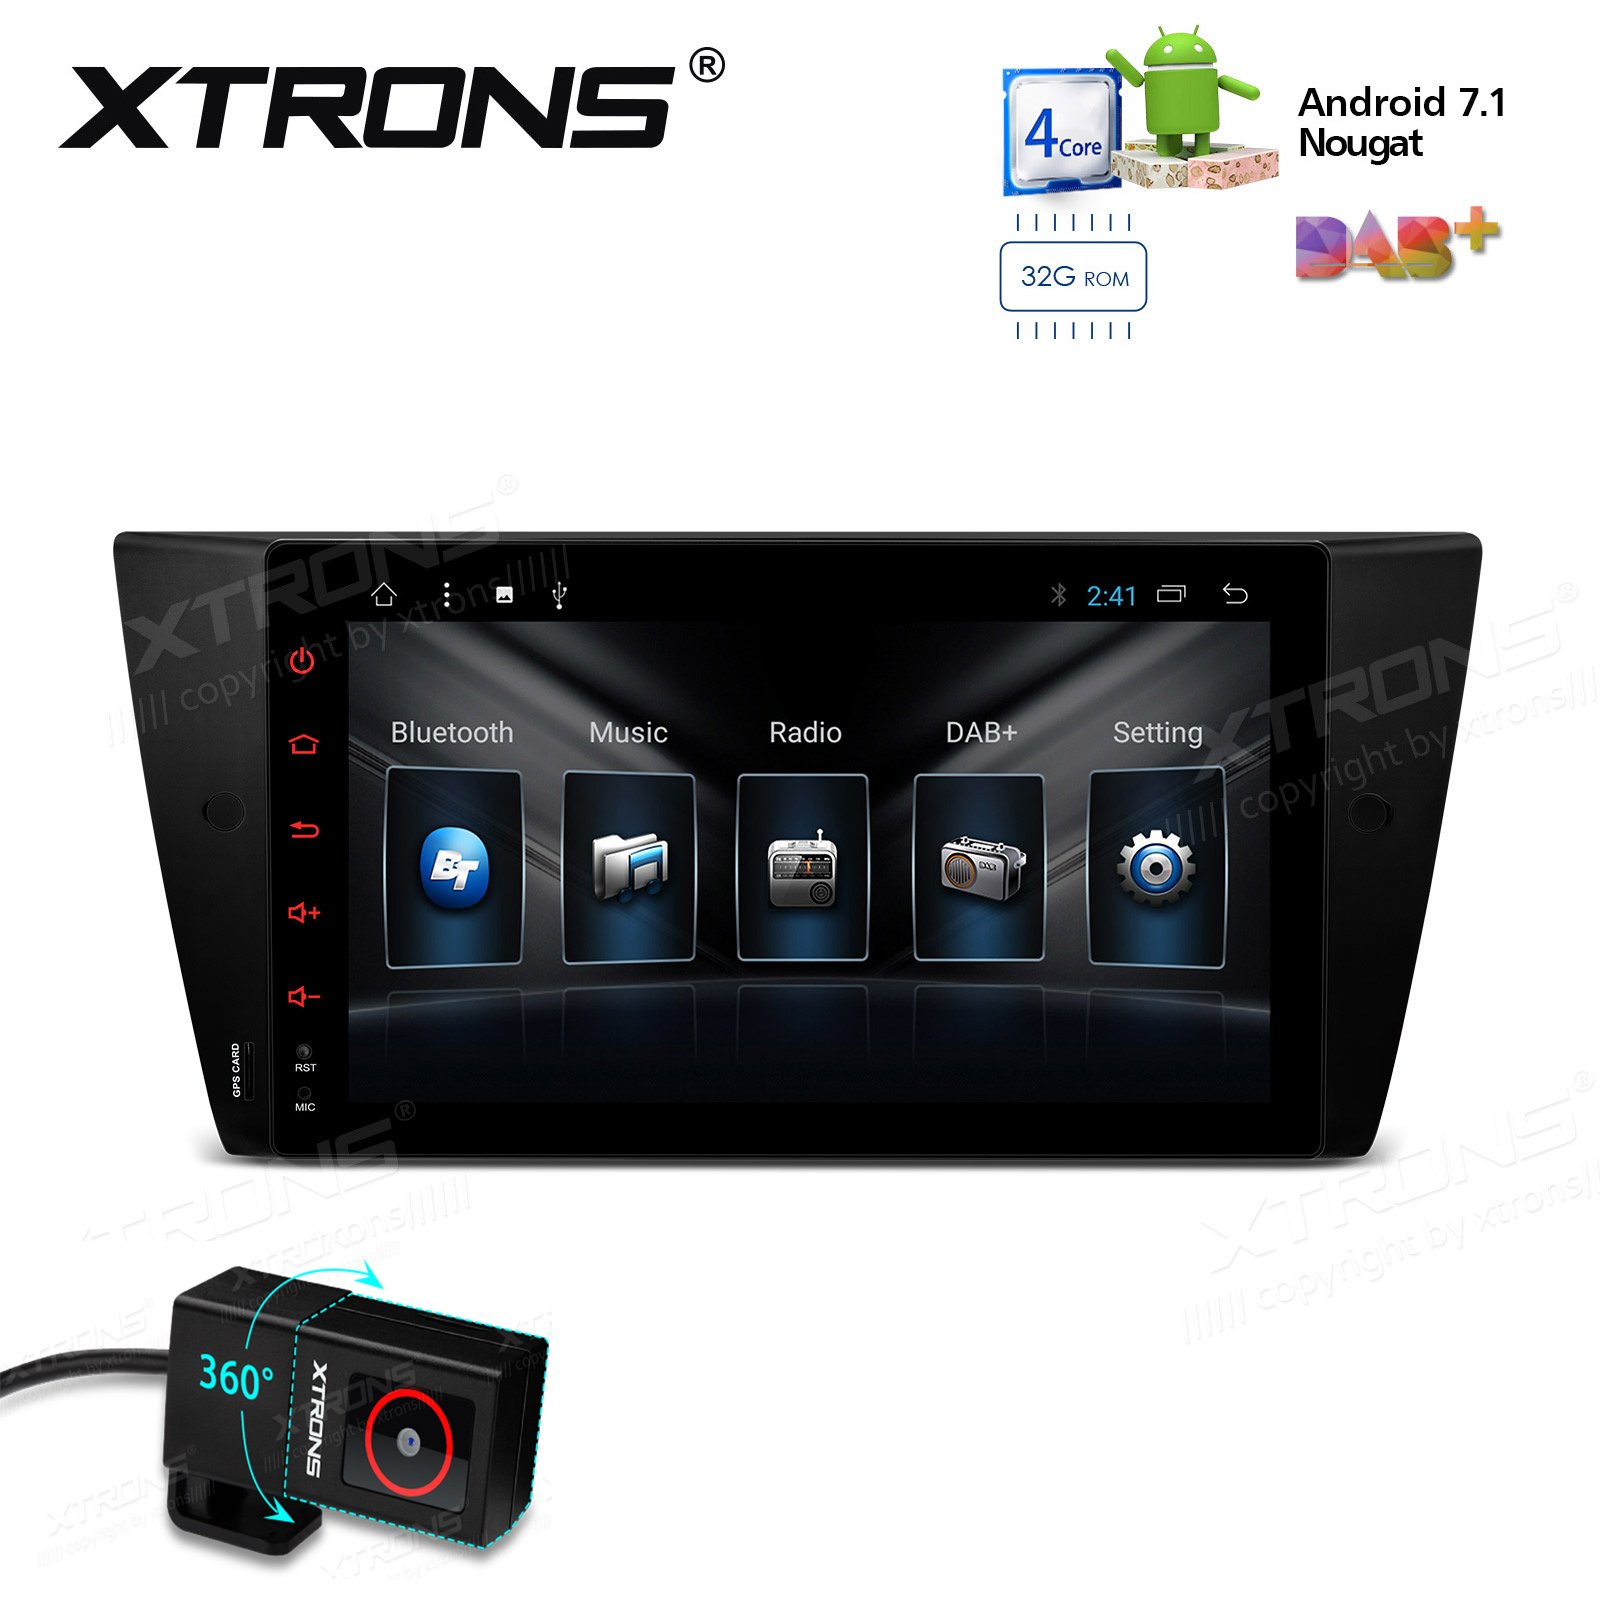 XTRONS Android 7.1 Quad Core 9 Inch 2G RAM 32G ROM HD Digital Multi Touch Screen Car Stereo Radio Player GPS OBD2 for BMW E90 M3 Car DVR Included